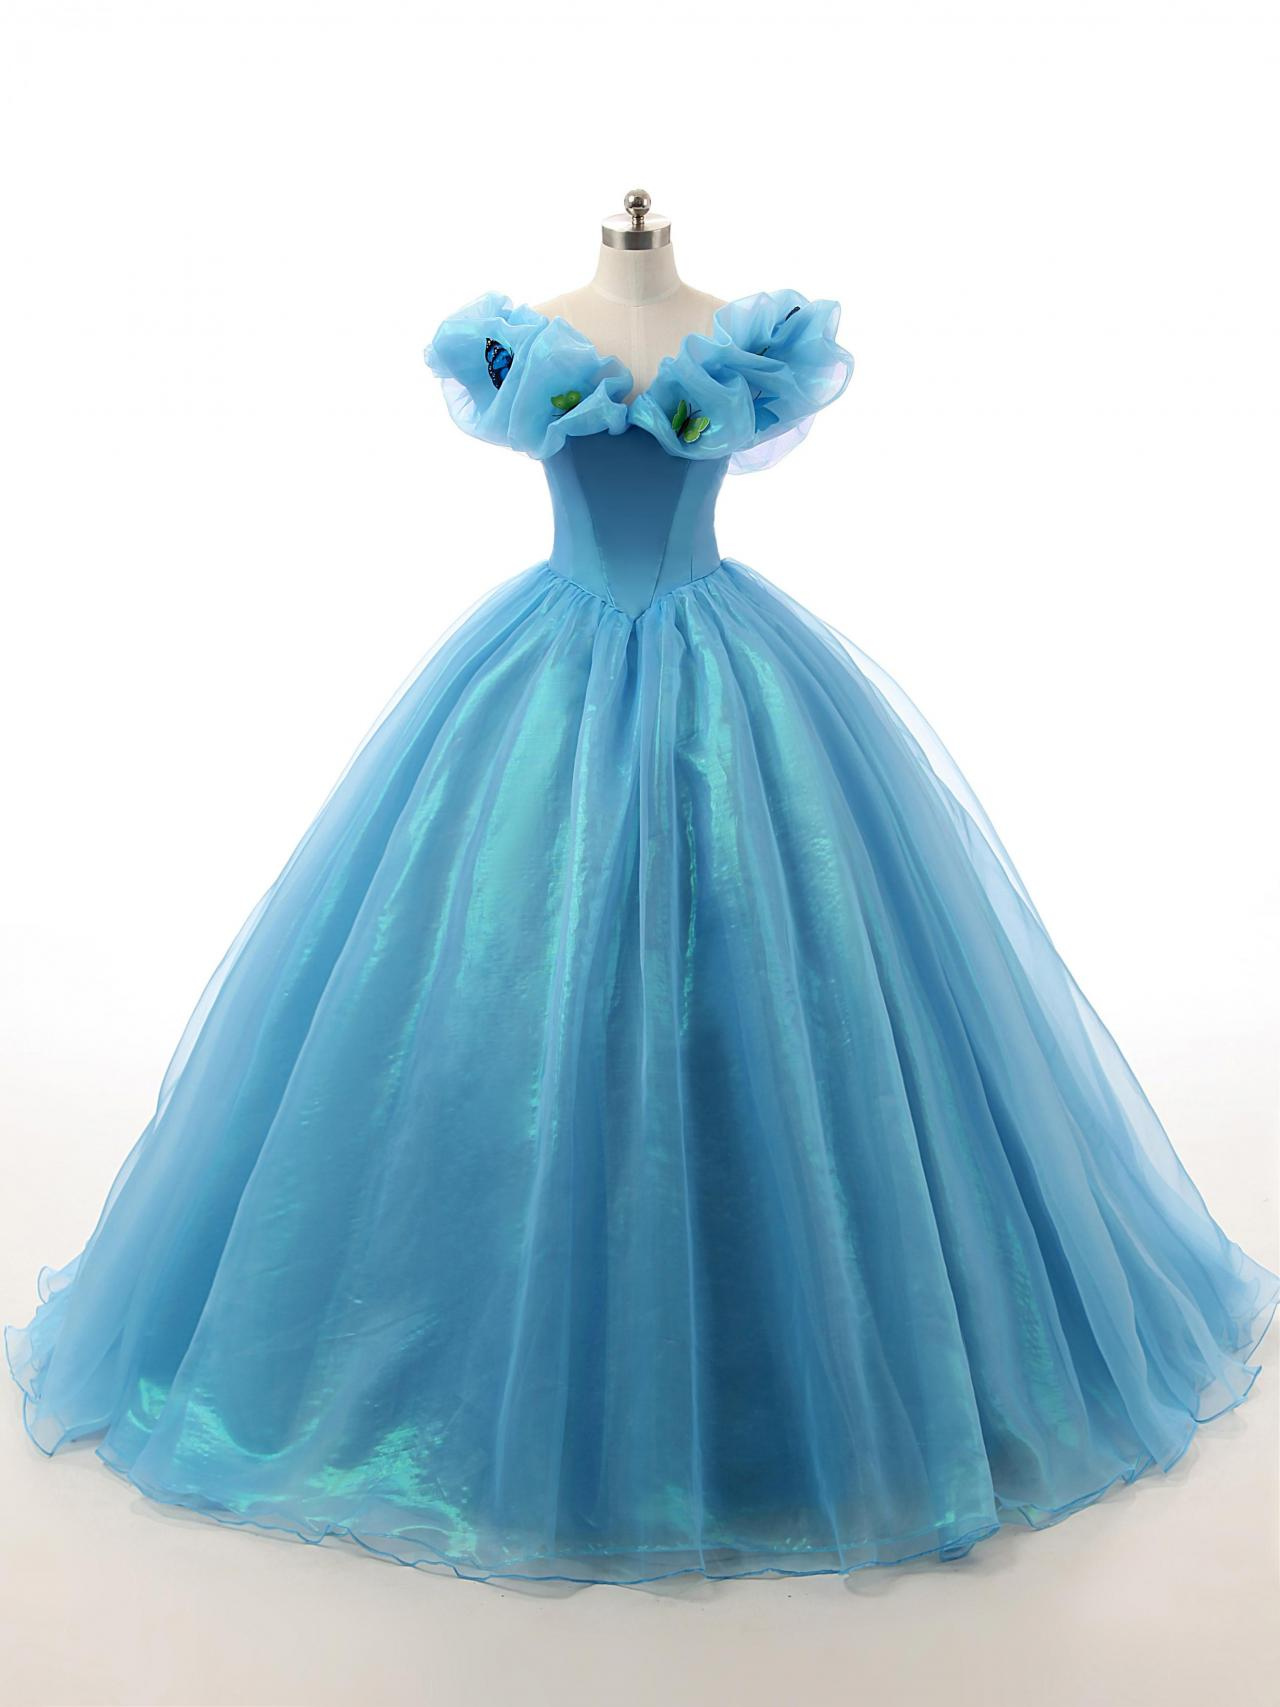 Sky Blue Cinderella Quinceanera Dresses 2017 New Movie Cosplay Costume Ball Gown Party Dresses Real On Luulla